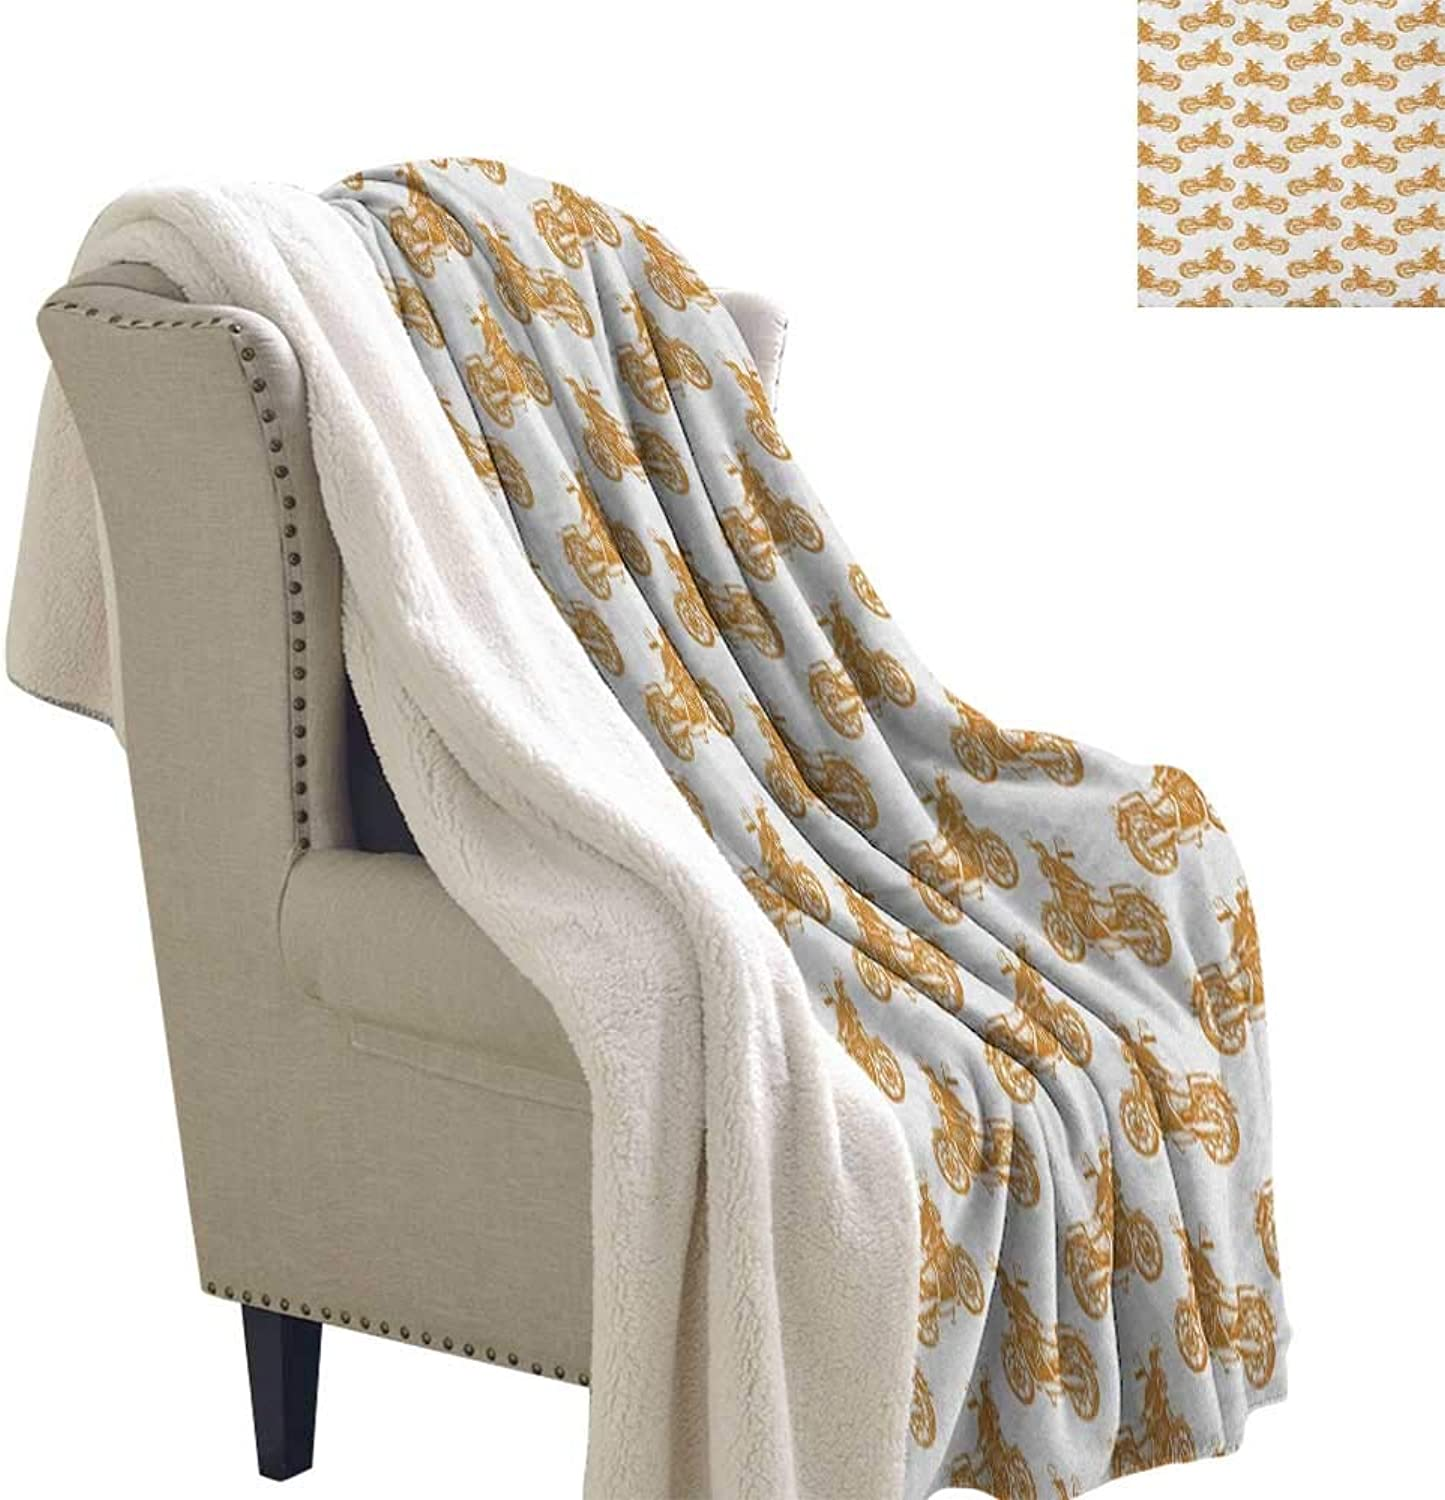 Suchashome Motorcycle Cozy Blankets and Throws Sketch Art Style Choppers Old School Vehicle with Rusty Gears and Engine Blanket Small Quilt 60x32 Inch Pale Brown White